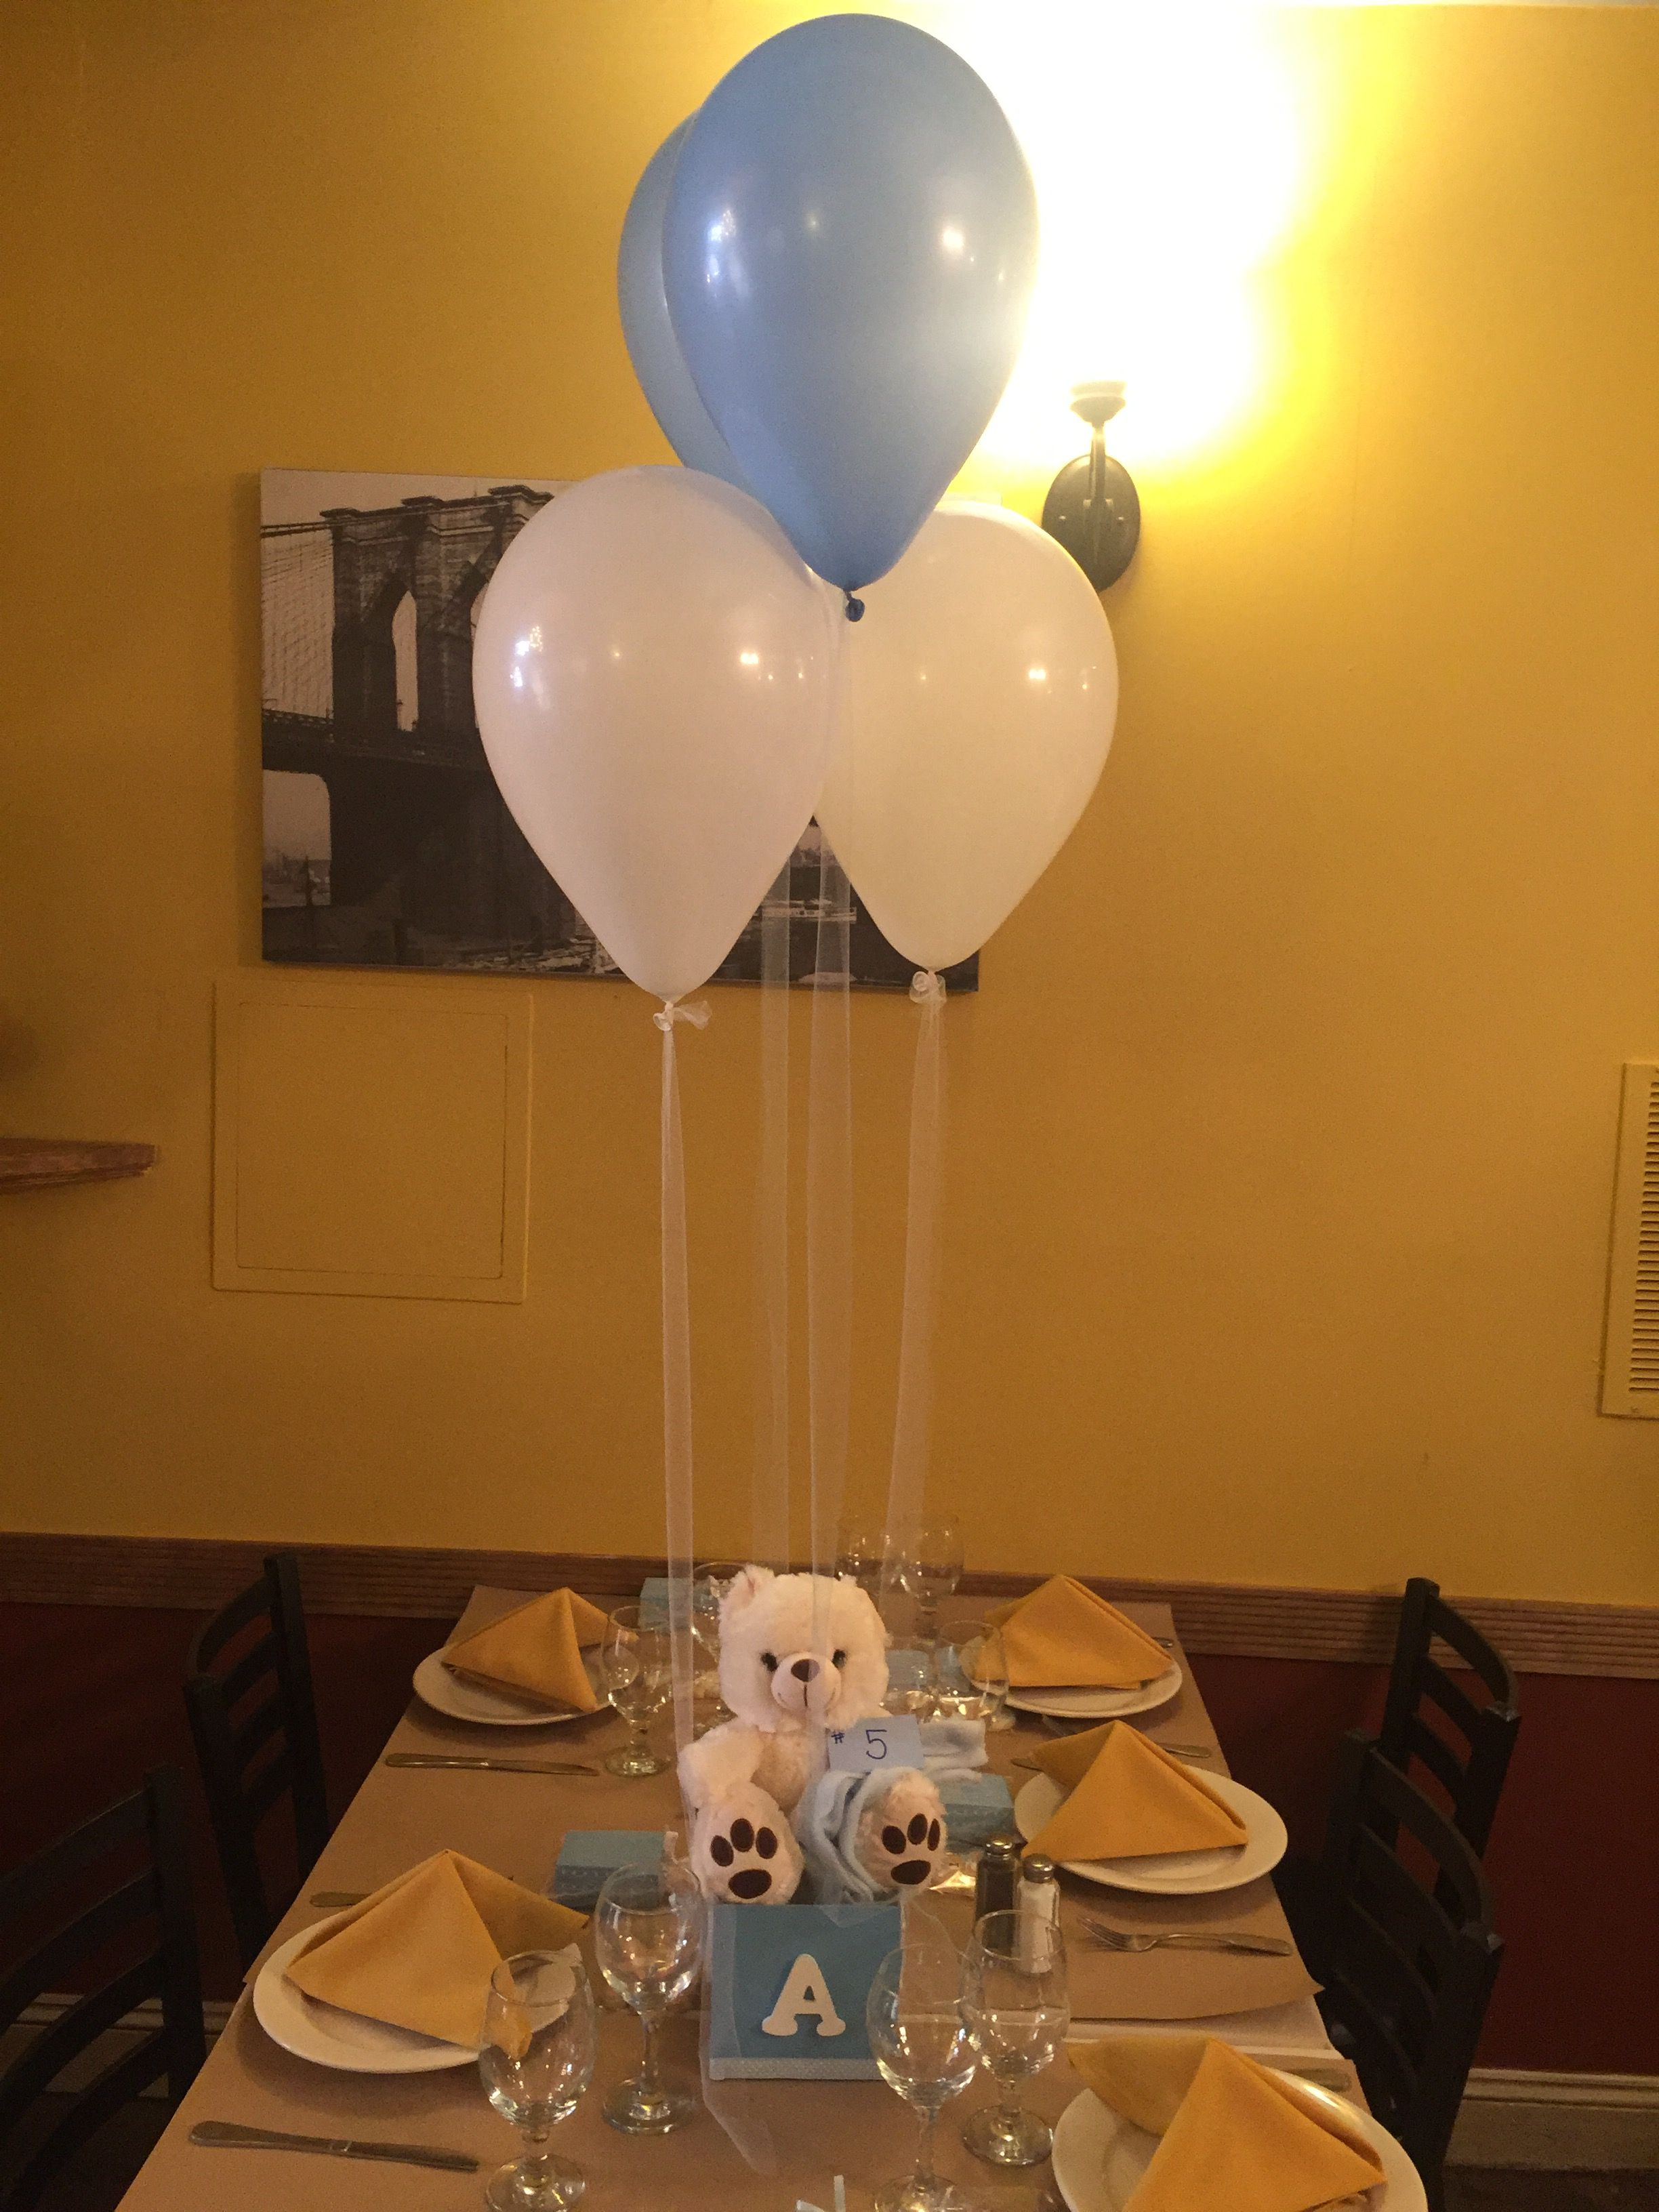 Super Cute Centerpieces Simple Balloons With Tulle Fit Right Into